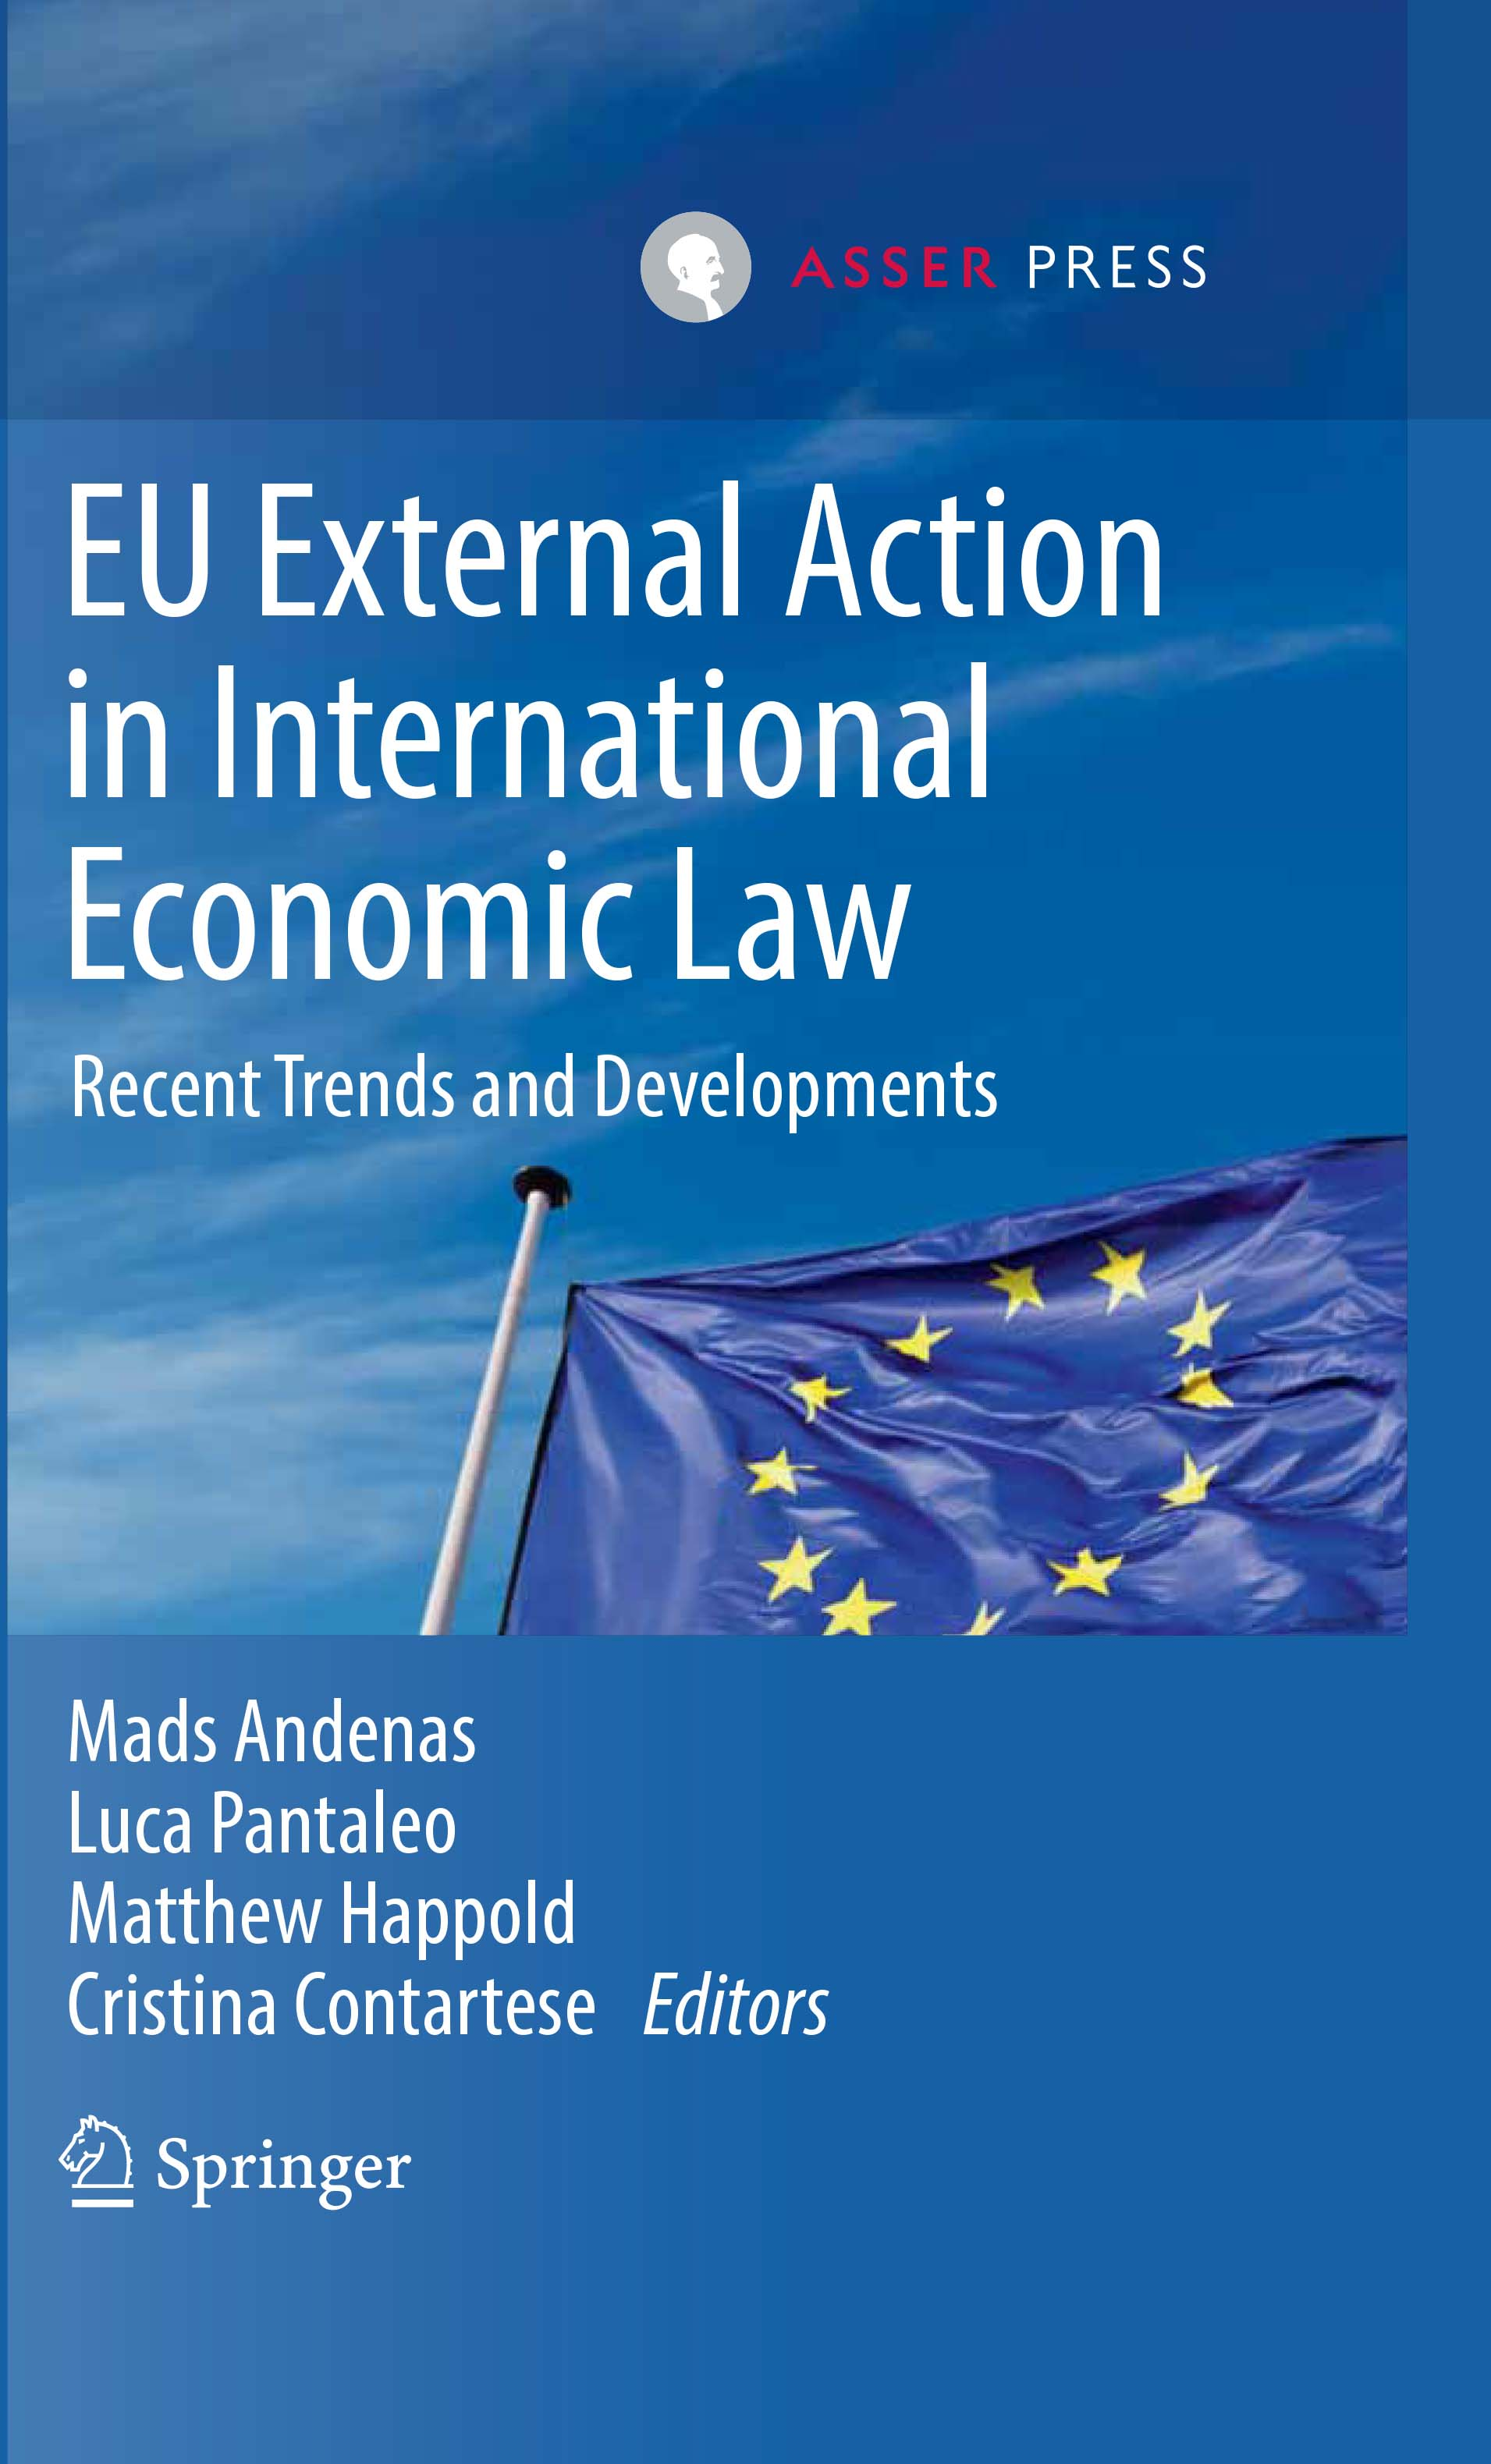 EU External Action in International Economic Law - Recent Trends and Developments